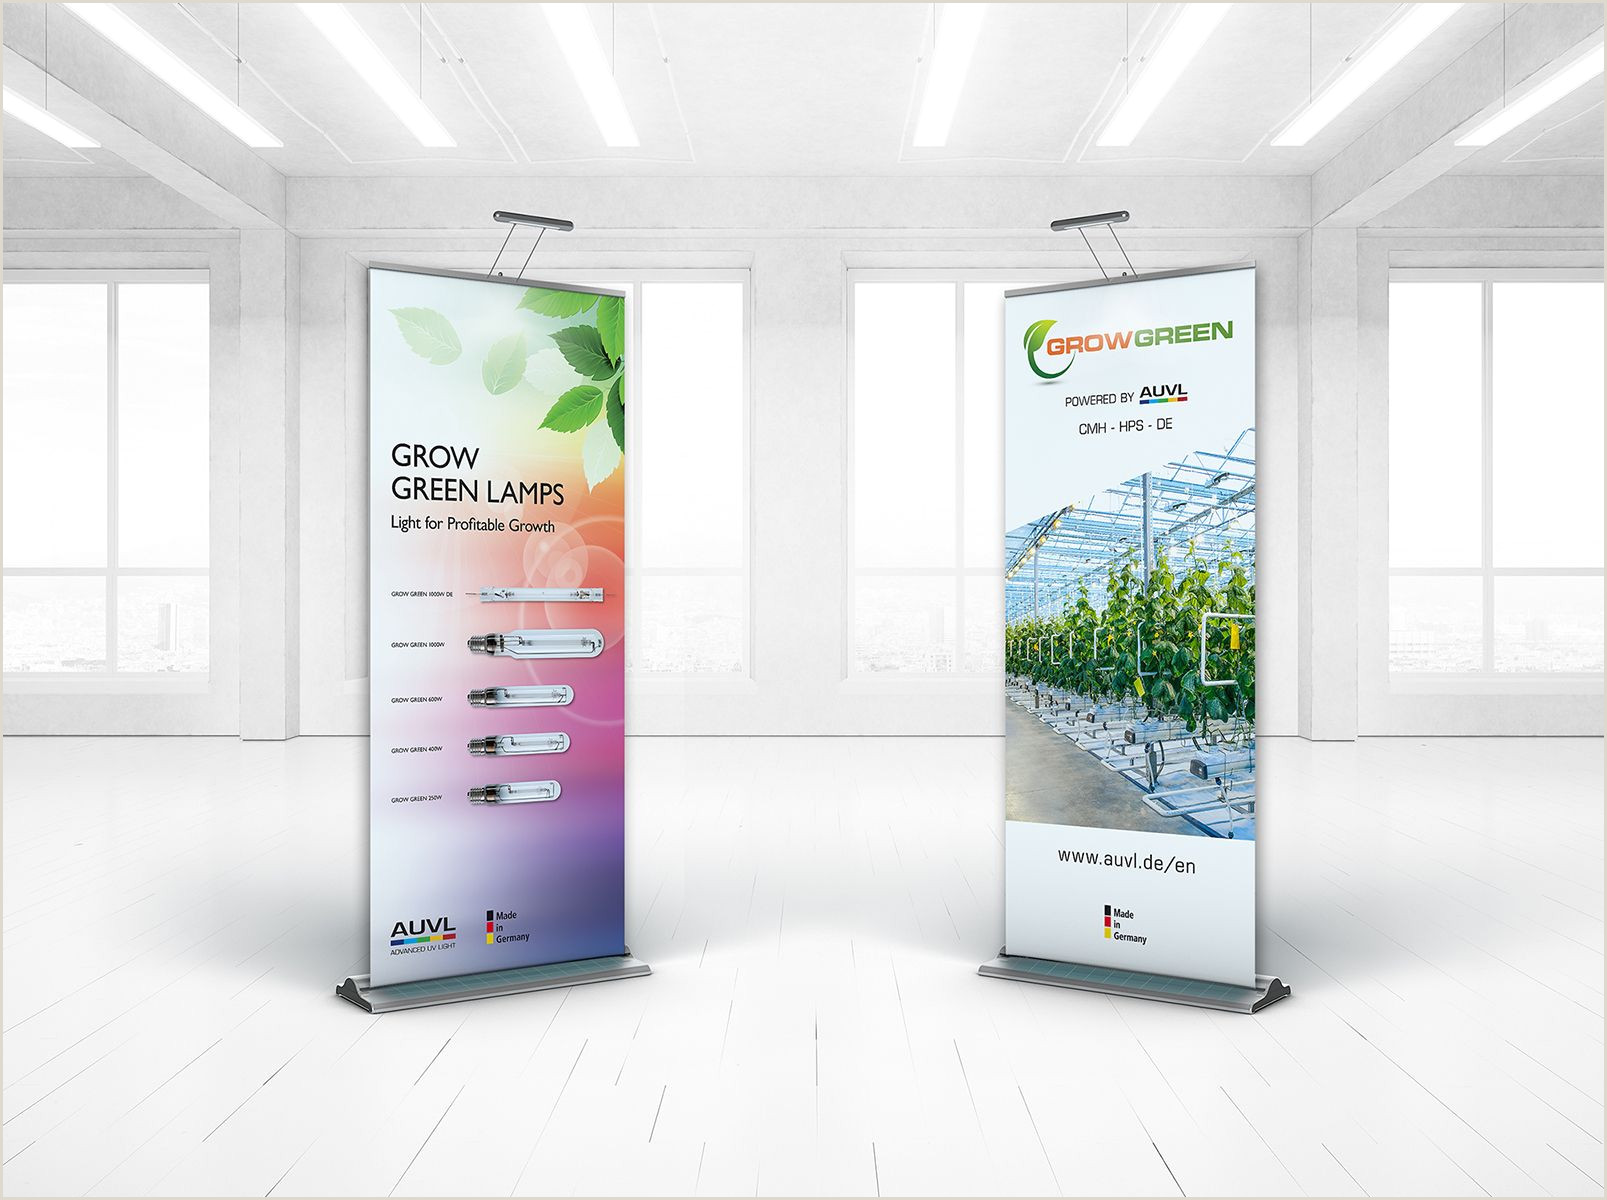 Floor Banners Retractable 50 Best Banners Flags & Trade Show Displays Images In 2020